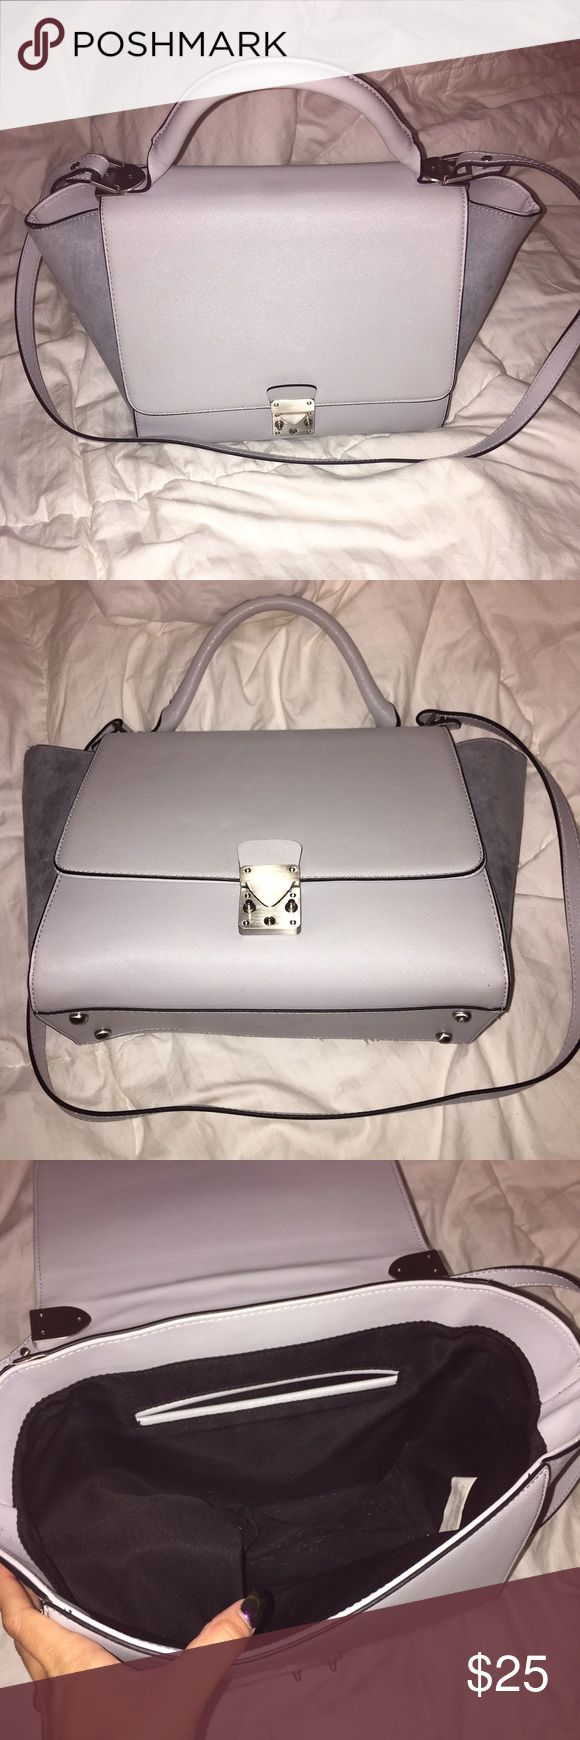 Zara Bag! This is a light blue Celine inspired bag from Zara. Carried a couple times as a book bag! Zara Bags Totes